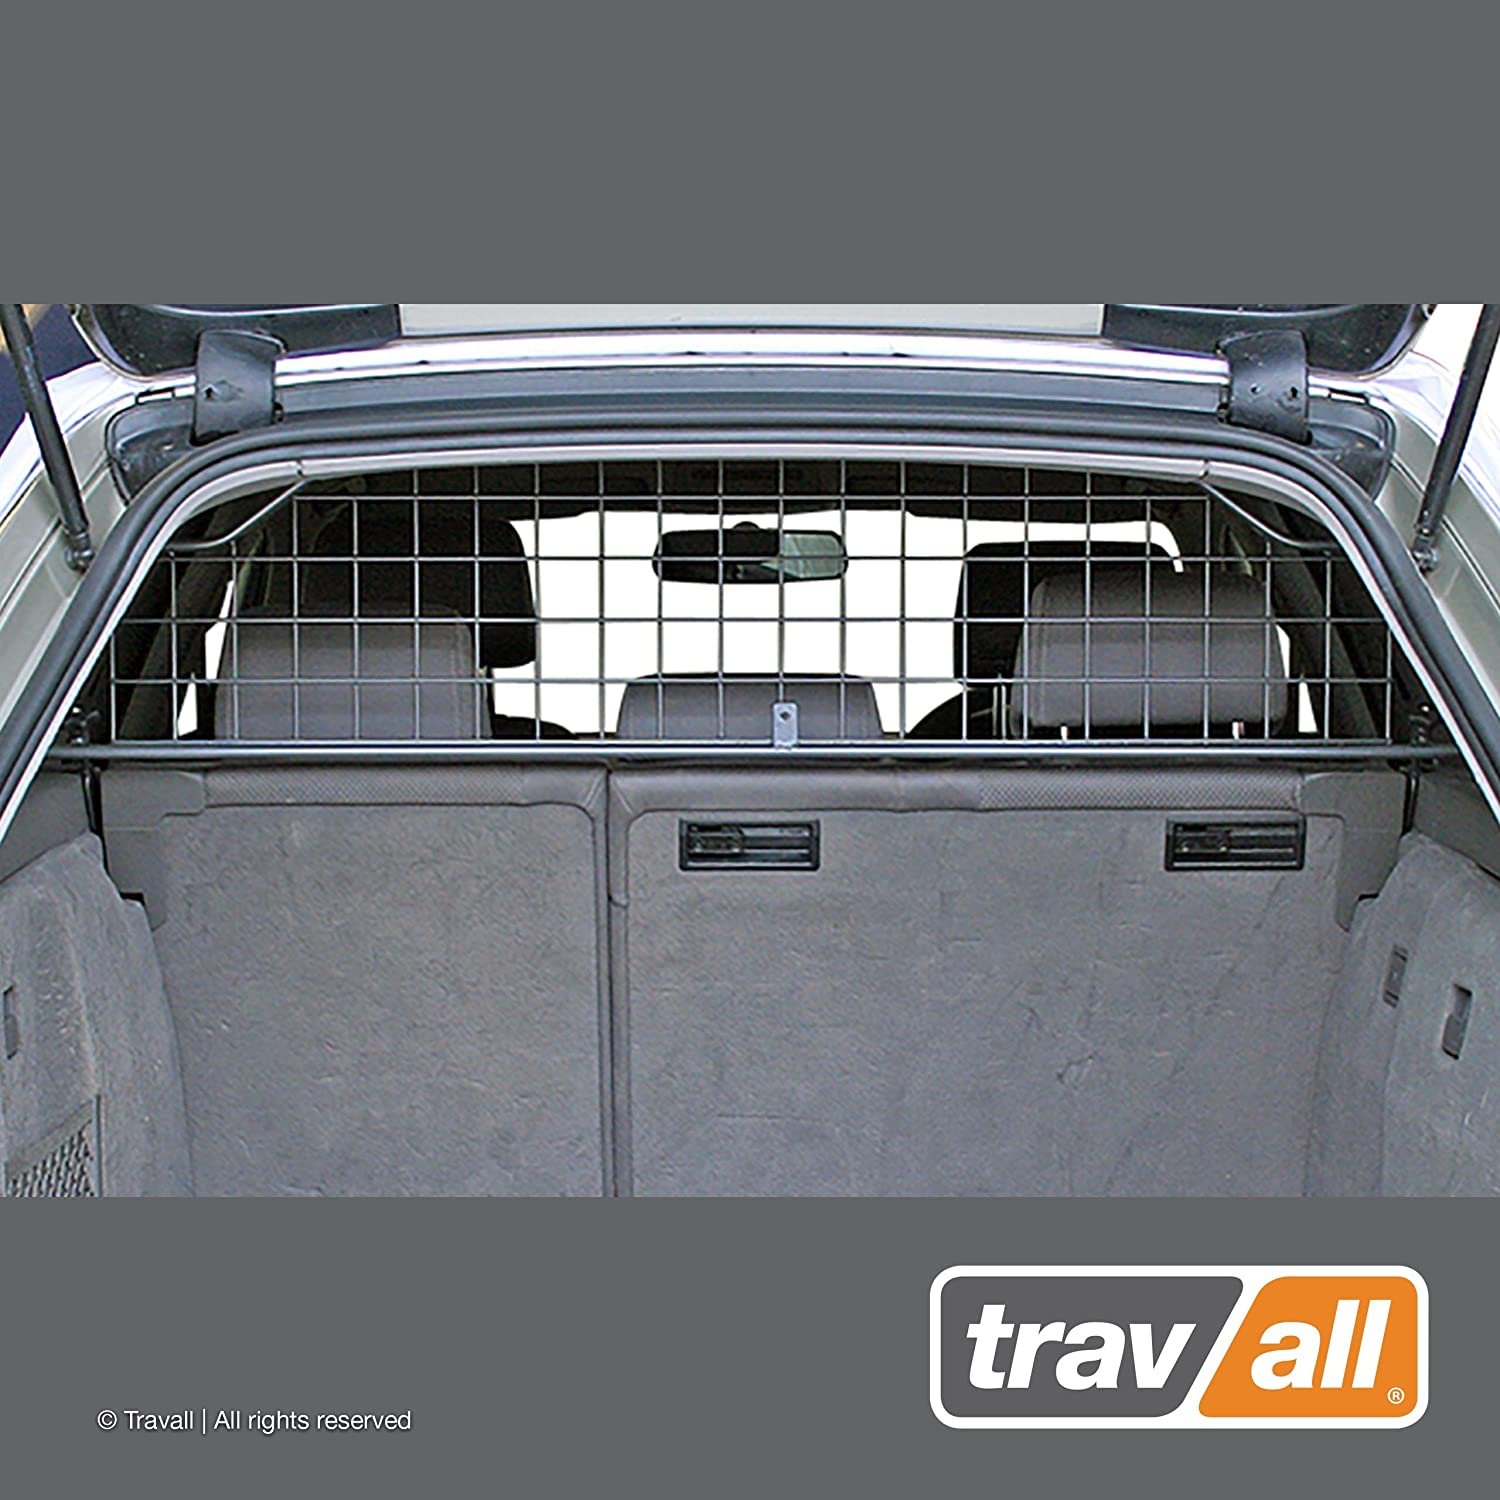 Travall Guard Compatible with Audi A4 Avant 2001-2008 RS4 Avant 2006-2008 S4 Avant 2002-2008 TDG1293 – Rattle-Free Steel Pet Barrier